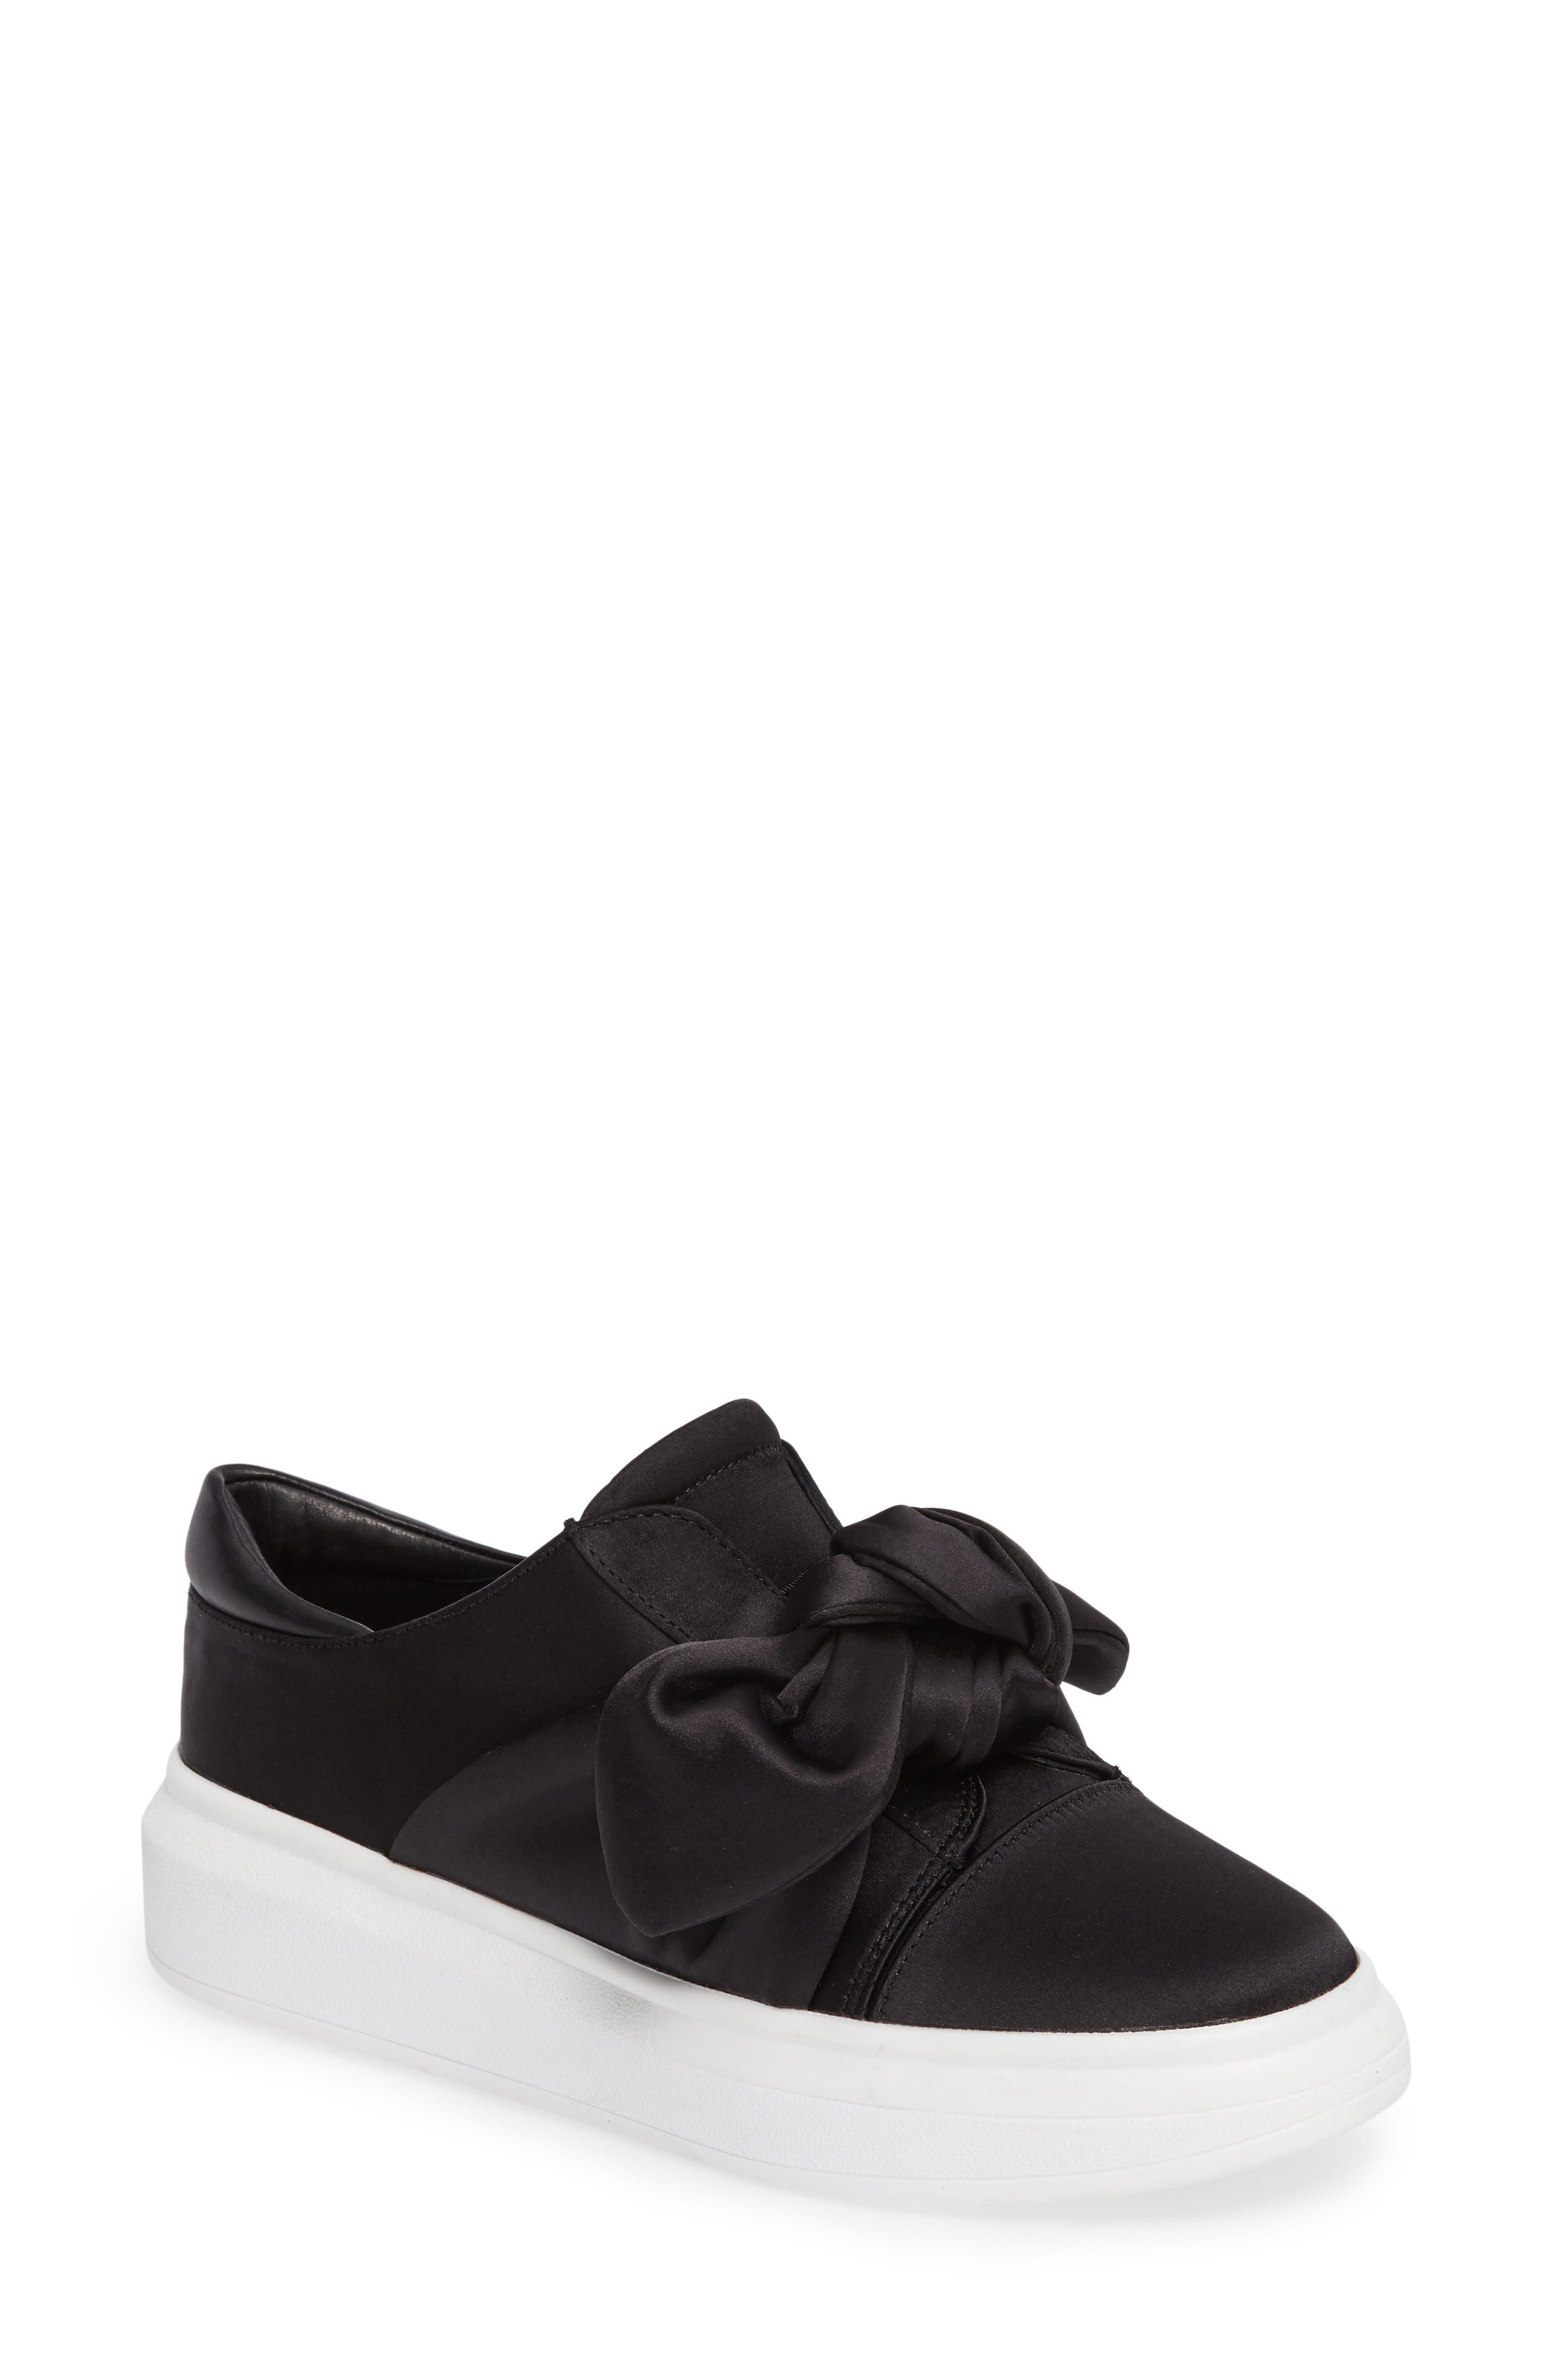 Alternate Image 1 Selected - Shellys London Edgar Slip-On Sneaker (Women)